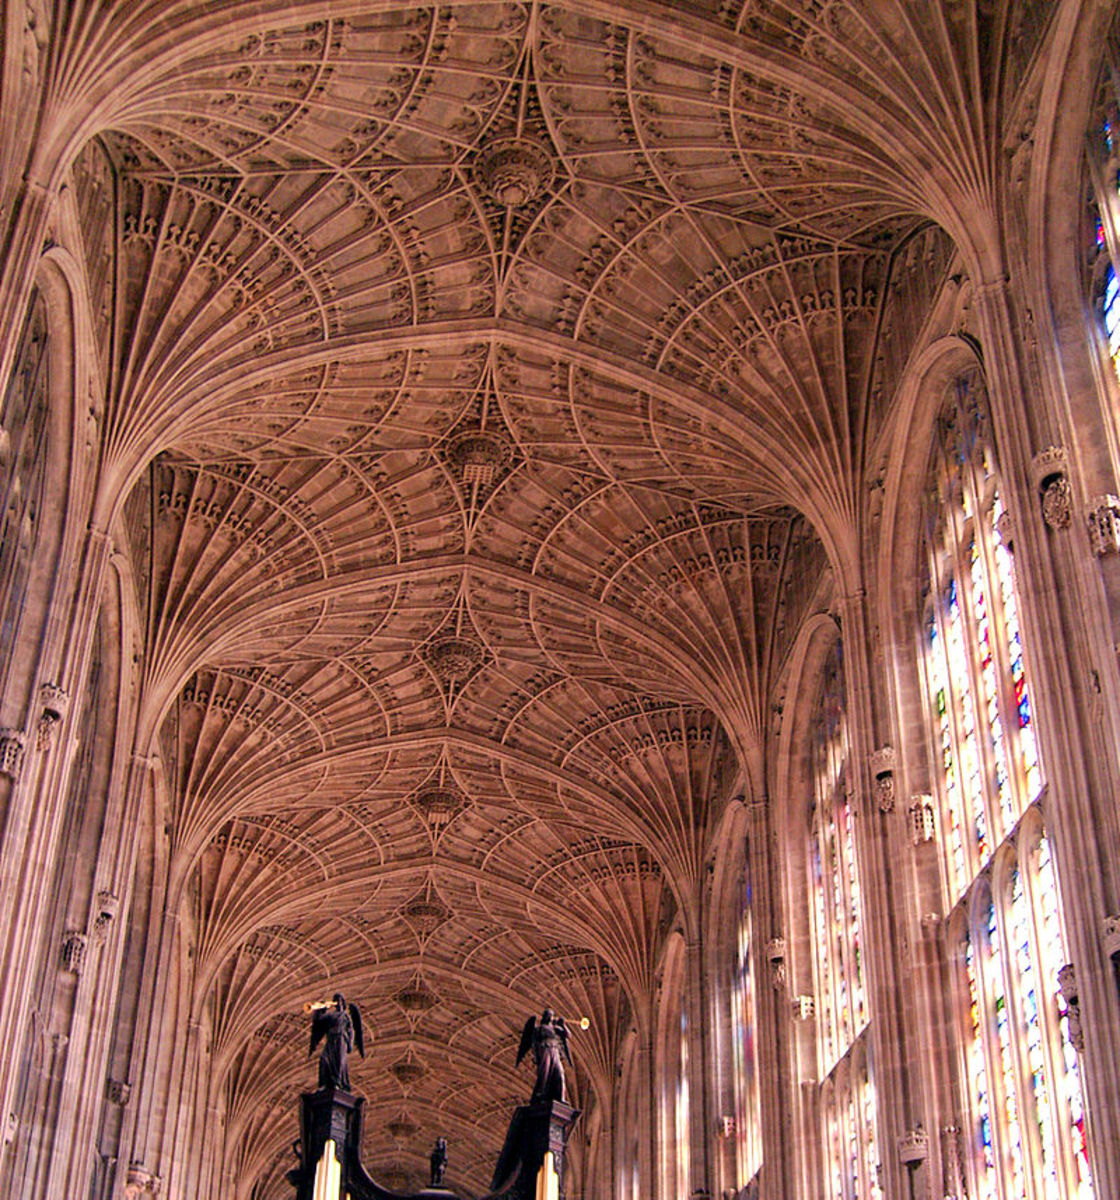 The depressed arch supported by fan vaulting at King's College Chapel, England.